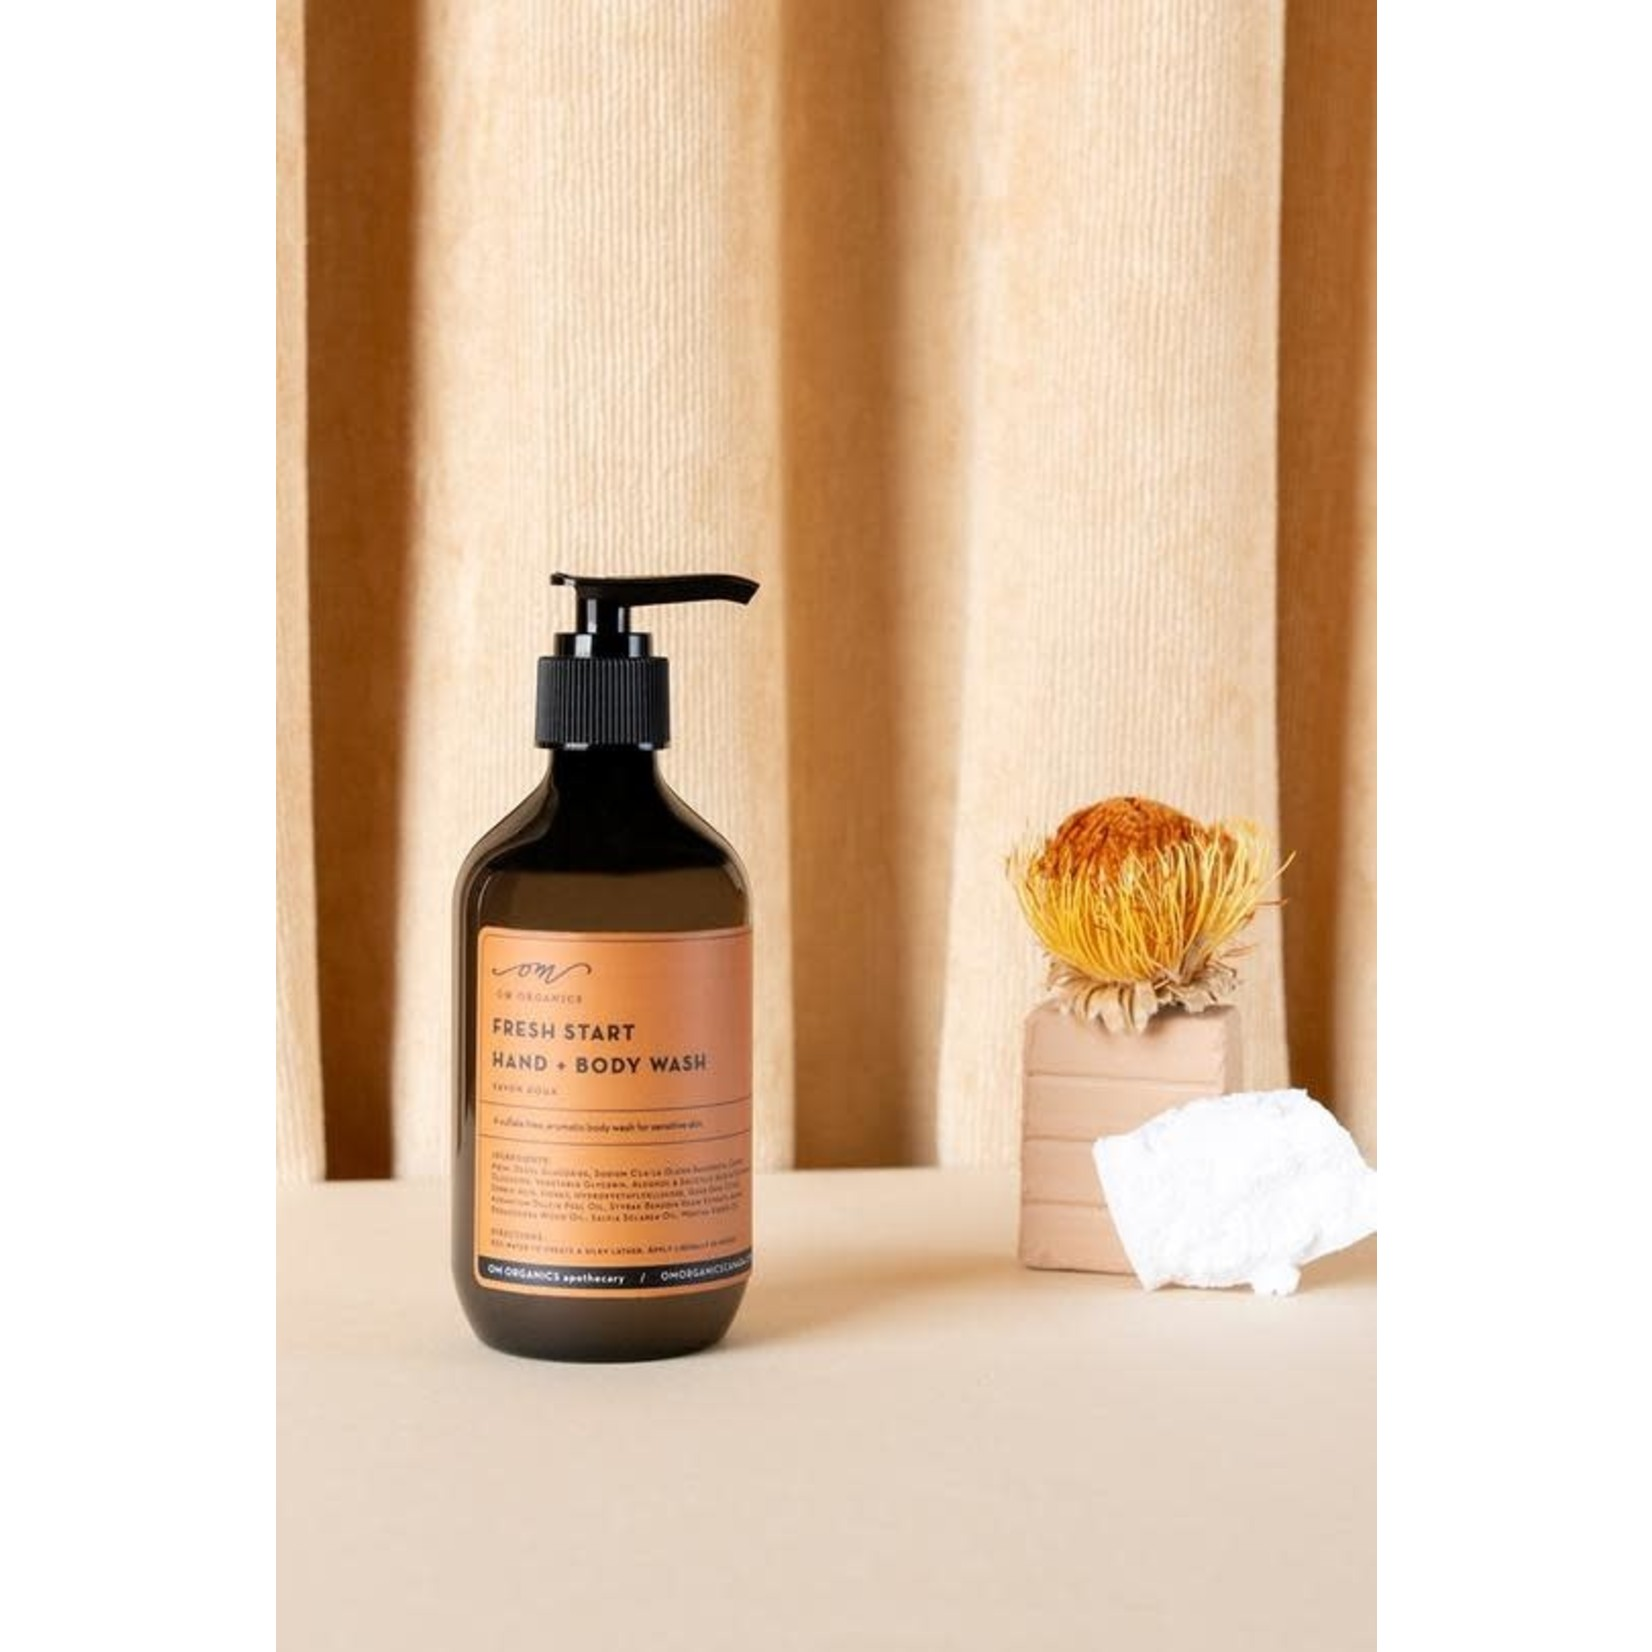 OM ORGANICS FRESH START HAND + BODY WASH